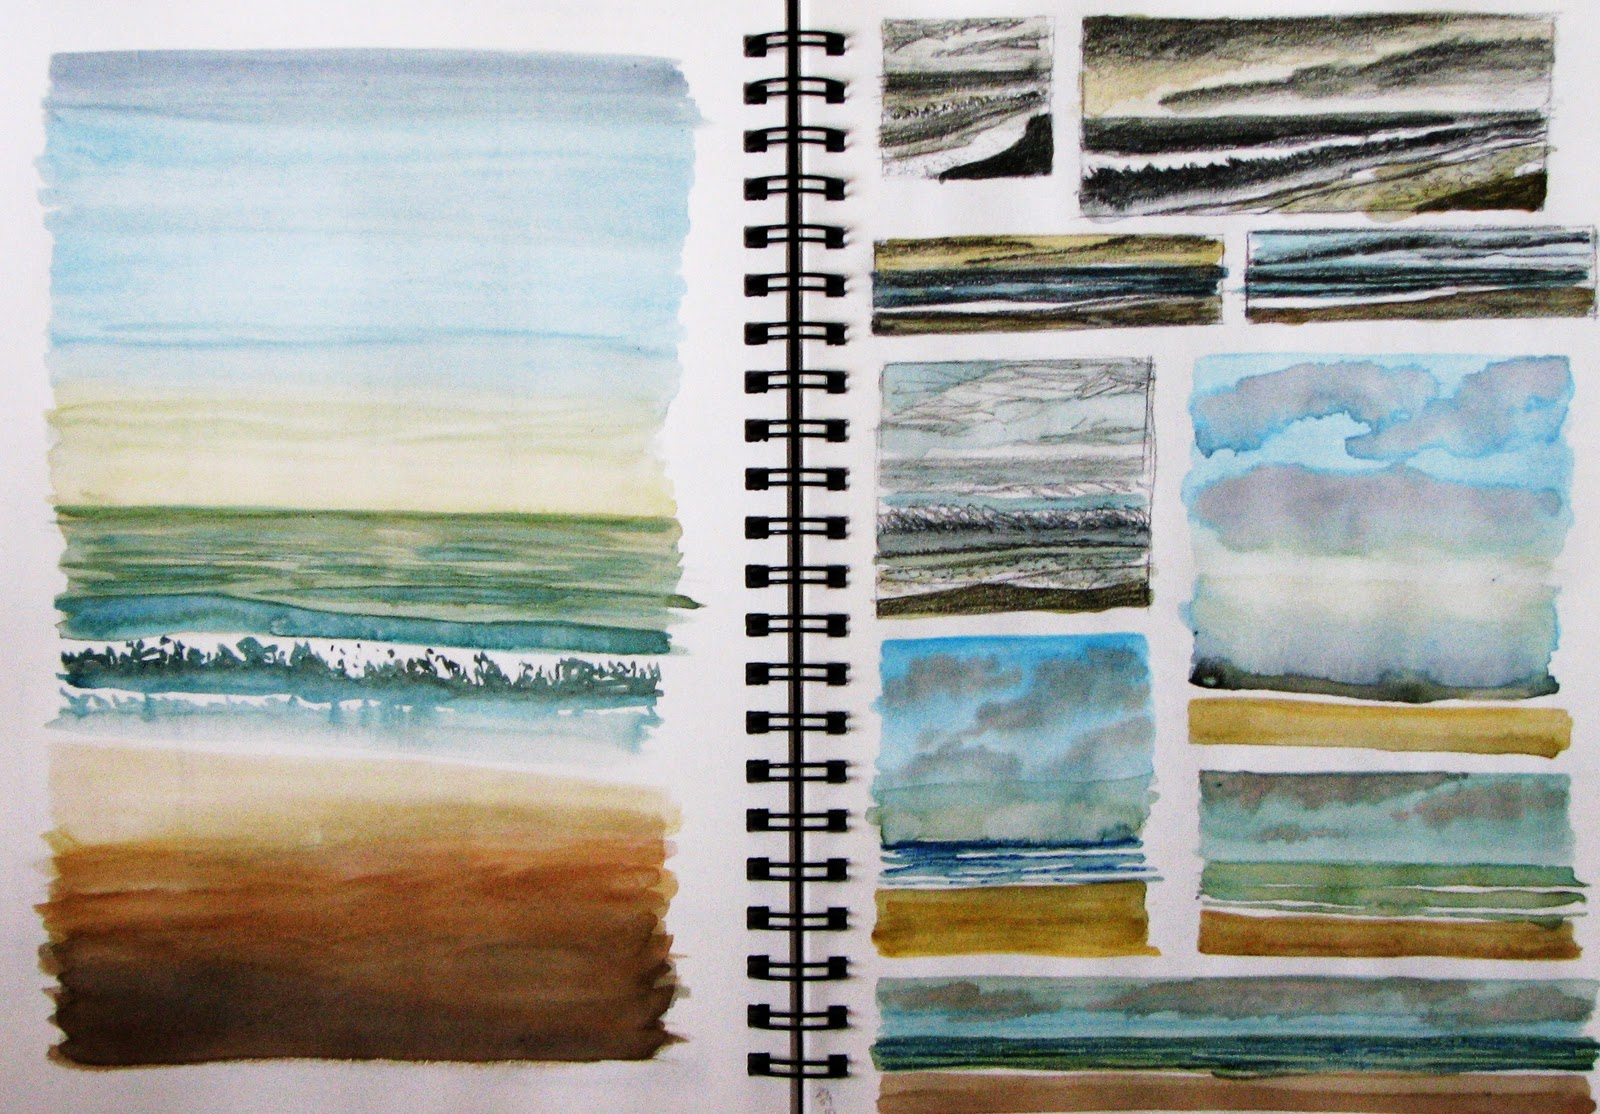 Sketchbook Pages on Mixing Colours